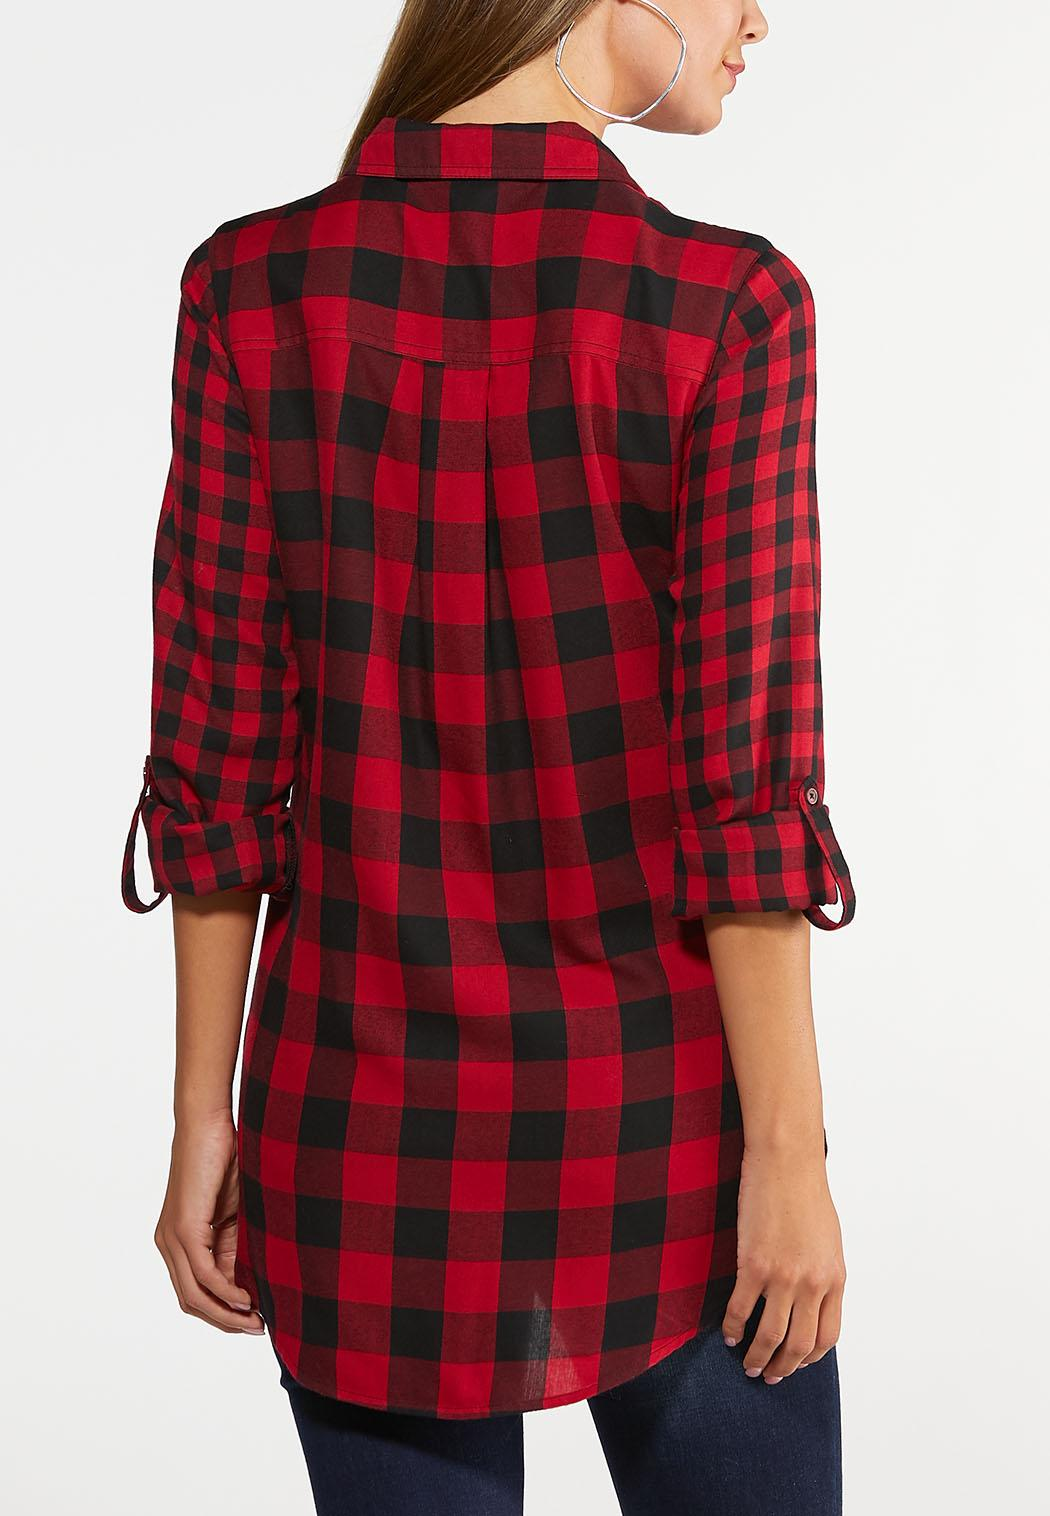 Plus Size Red Buffalo Plaid Top (Item #43966872)